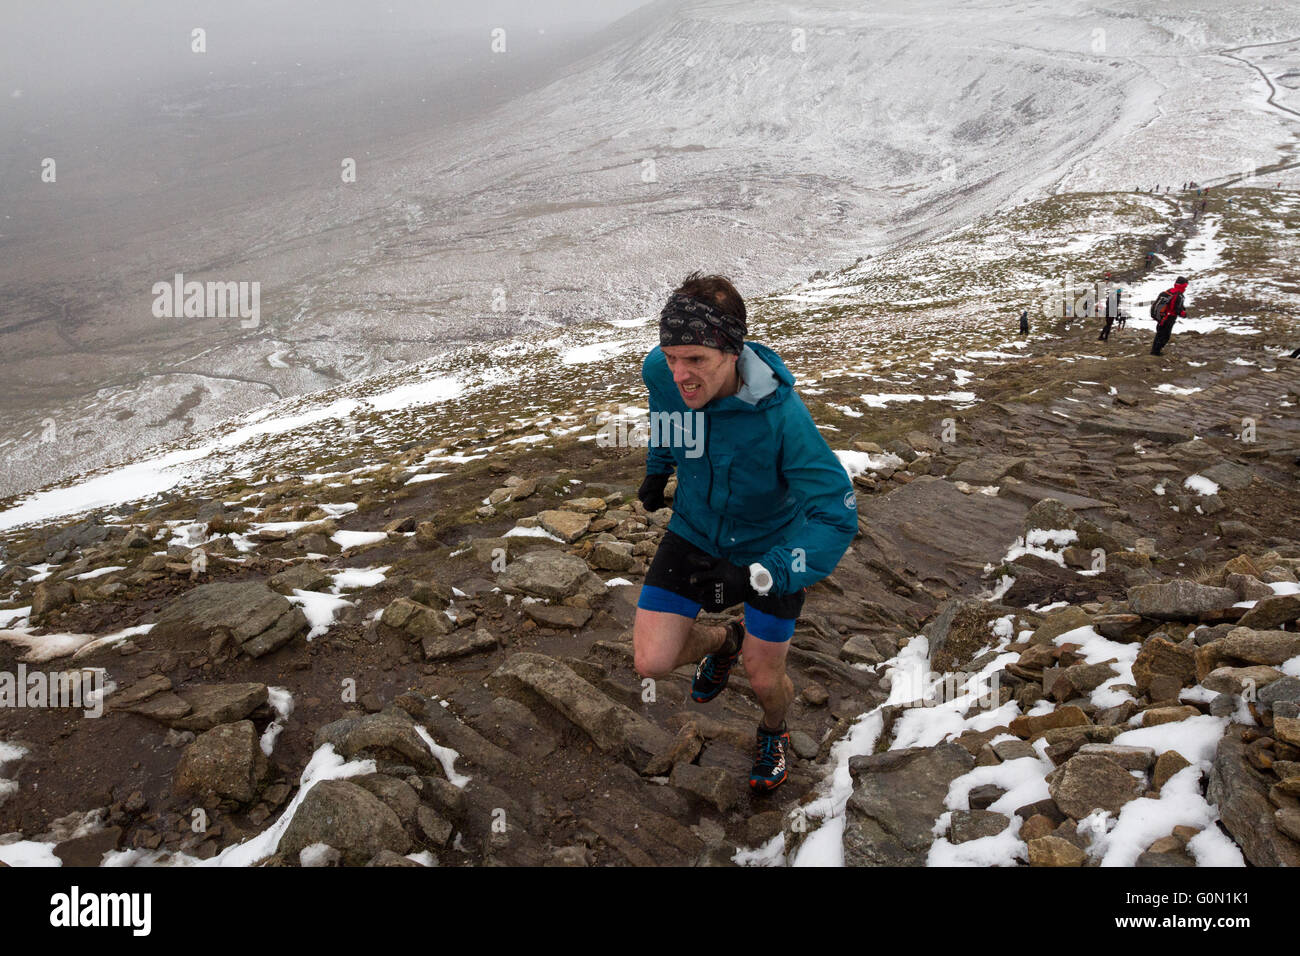 A runner makes the ascent to summit of Ingleborough during the annual Three Peaks Race - Stock Image